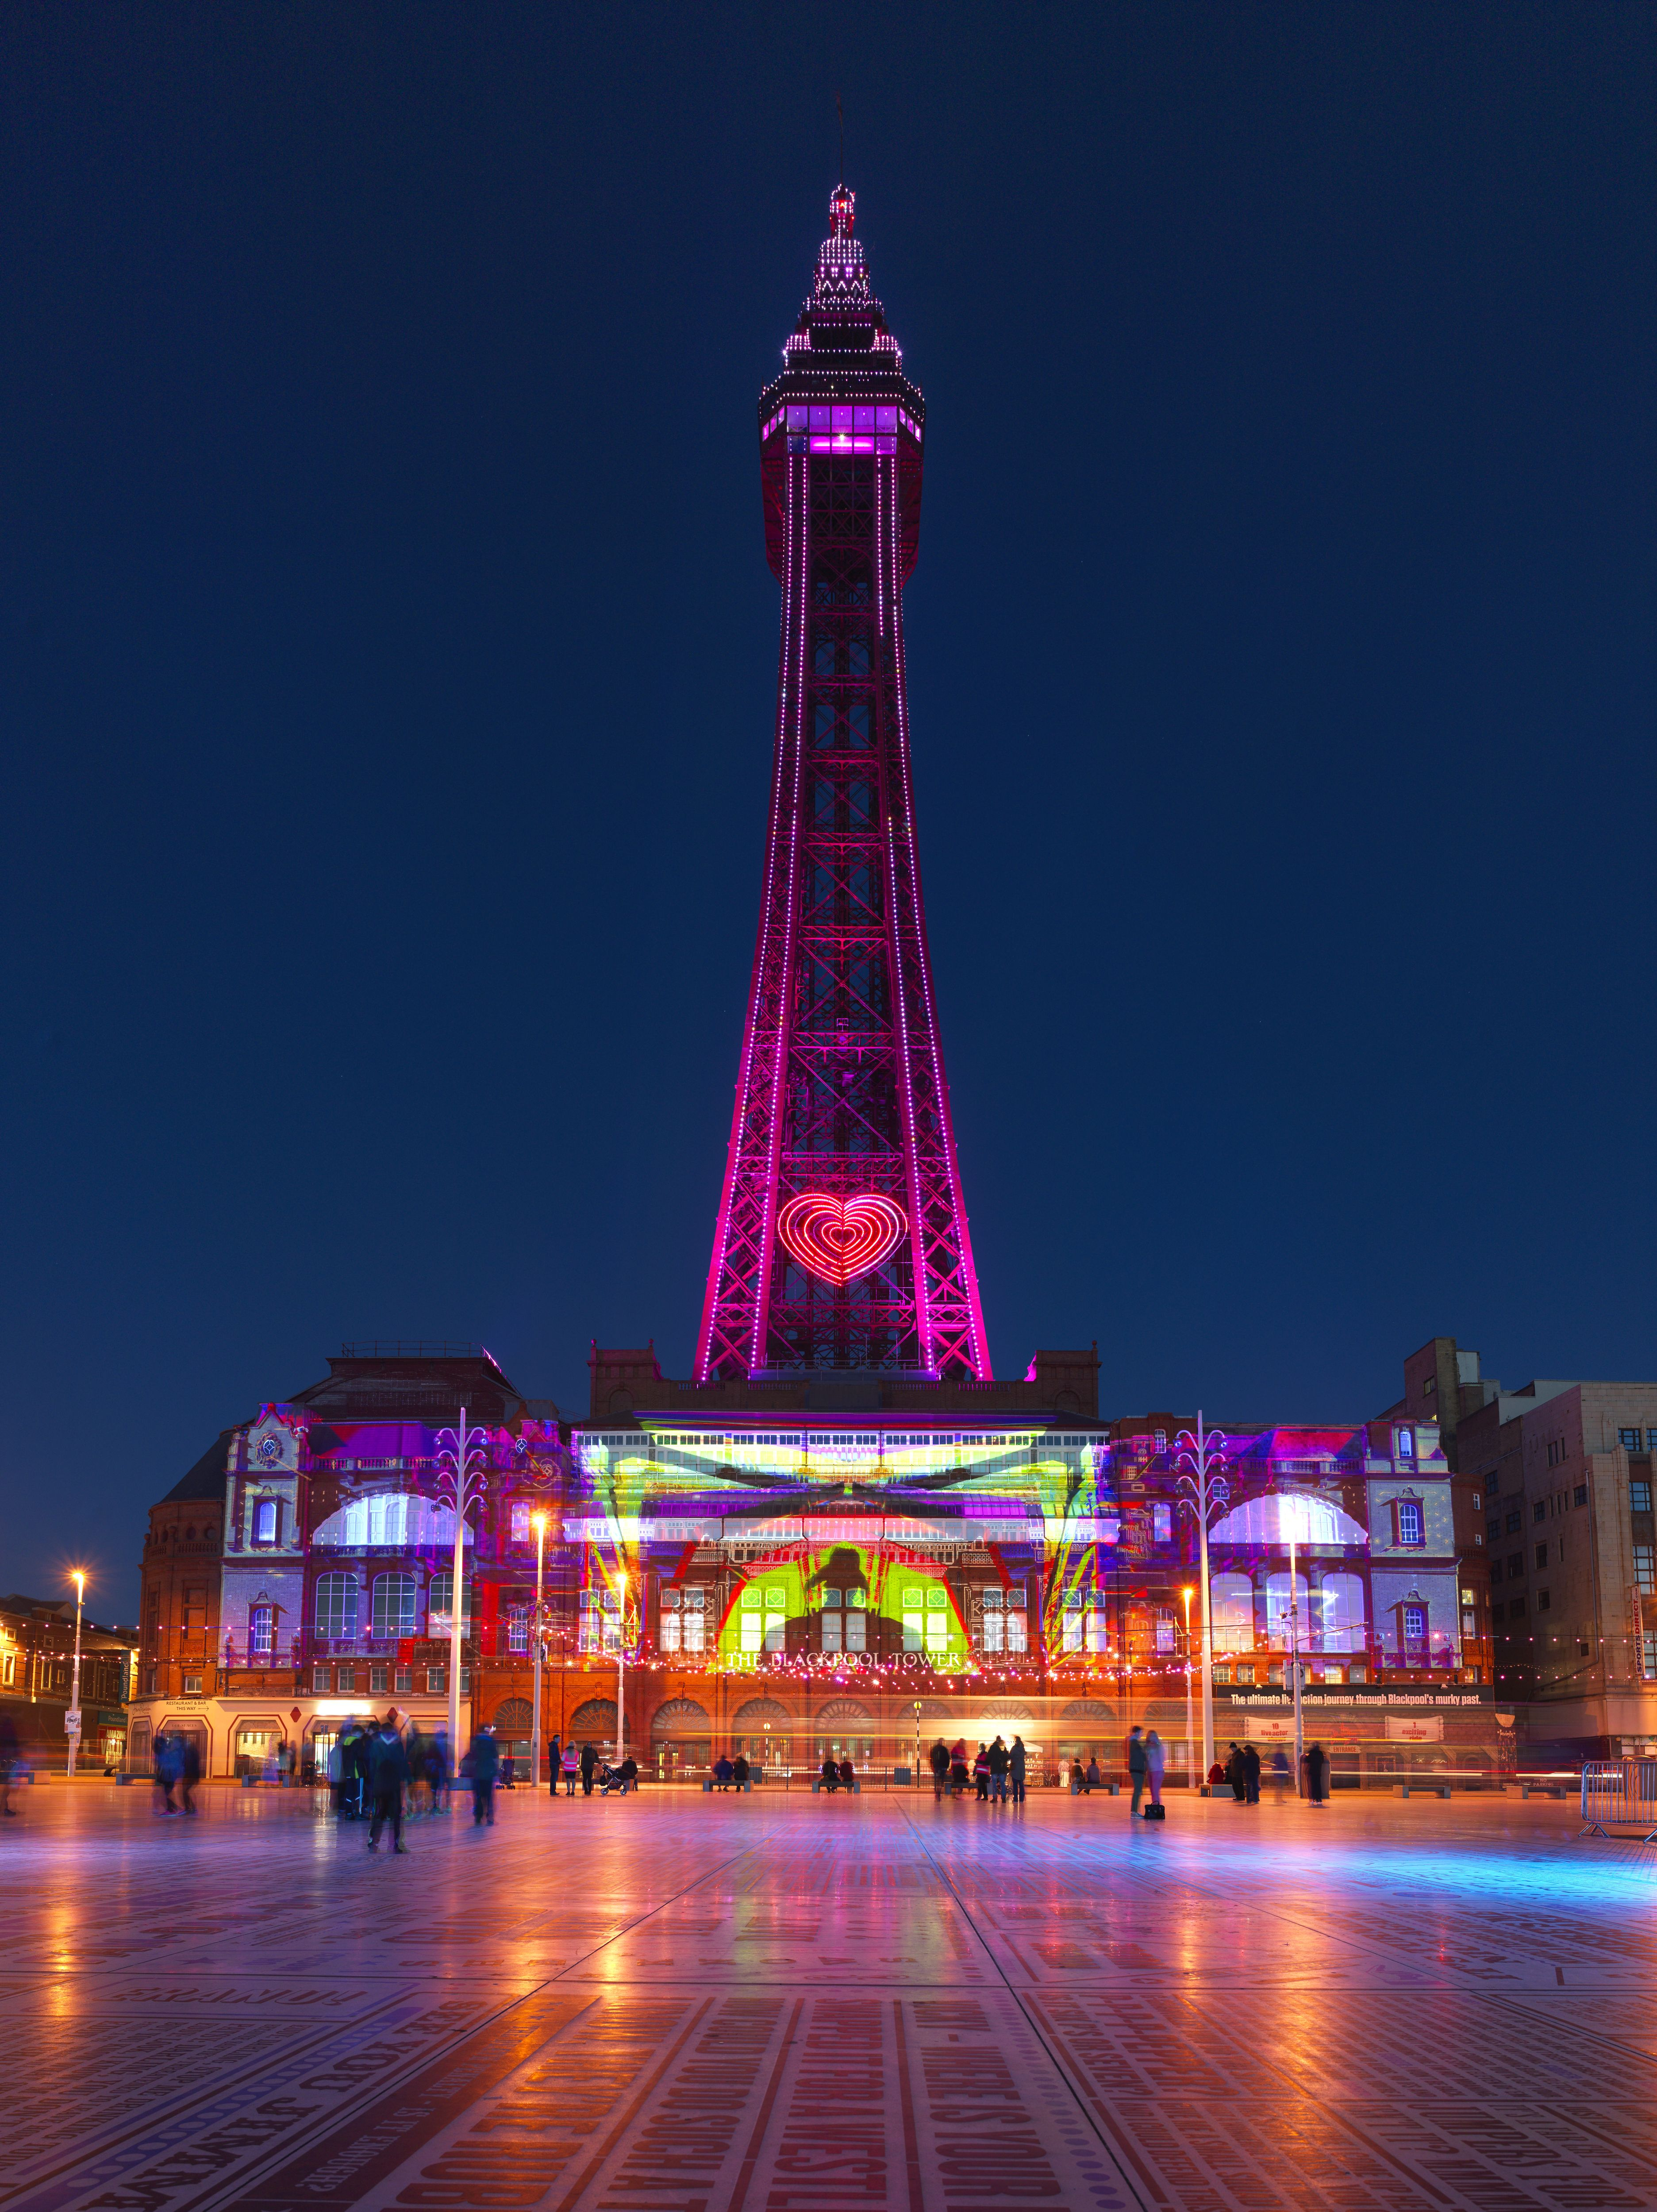 Illuminating the Blackpool Tower with Lightpool projection